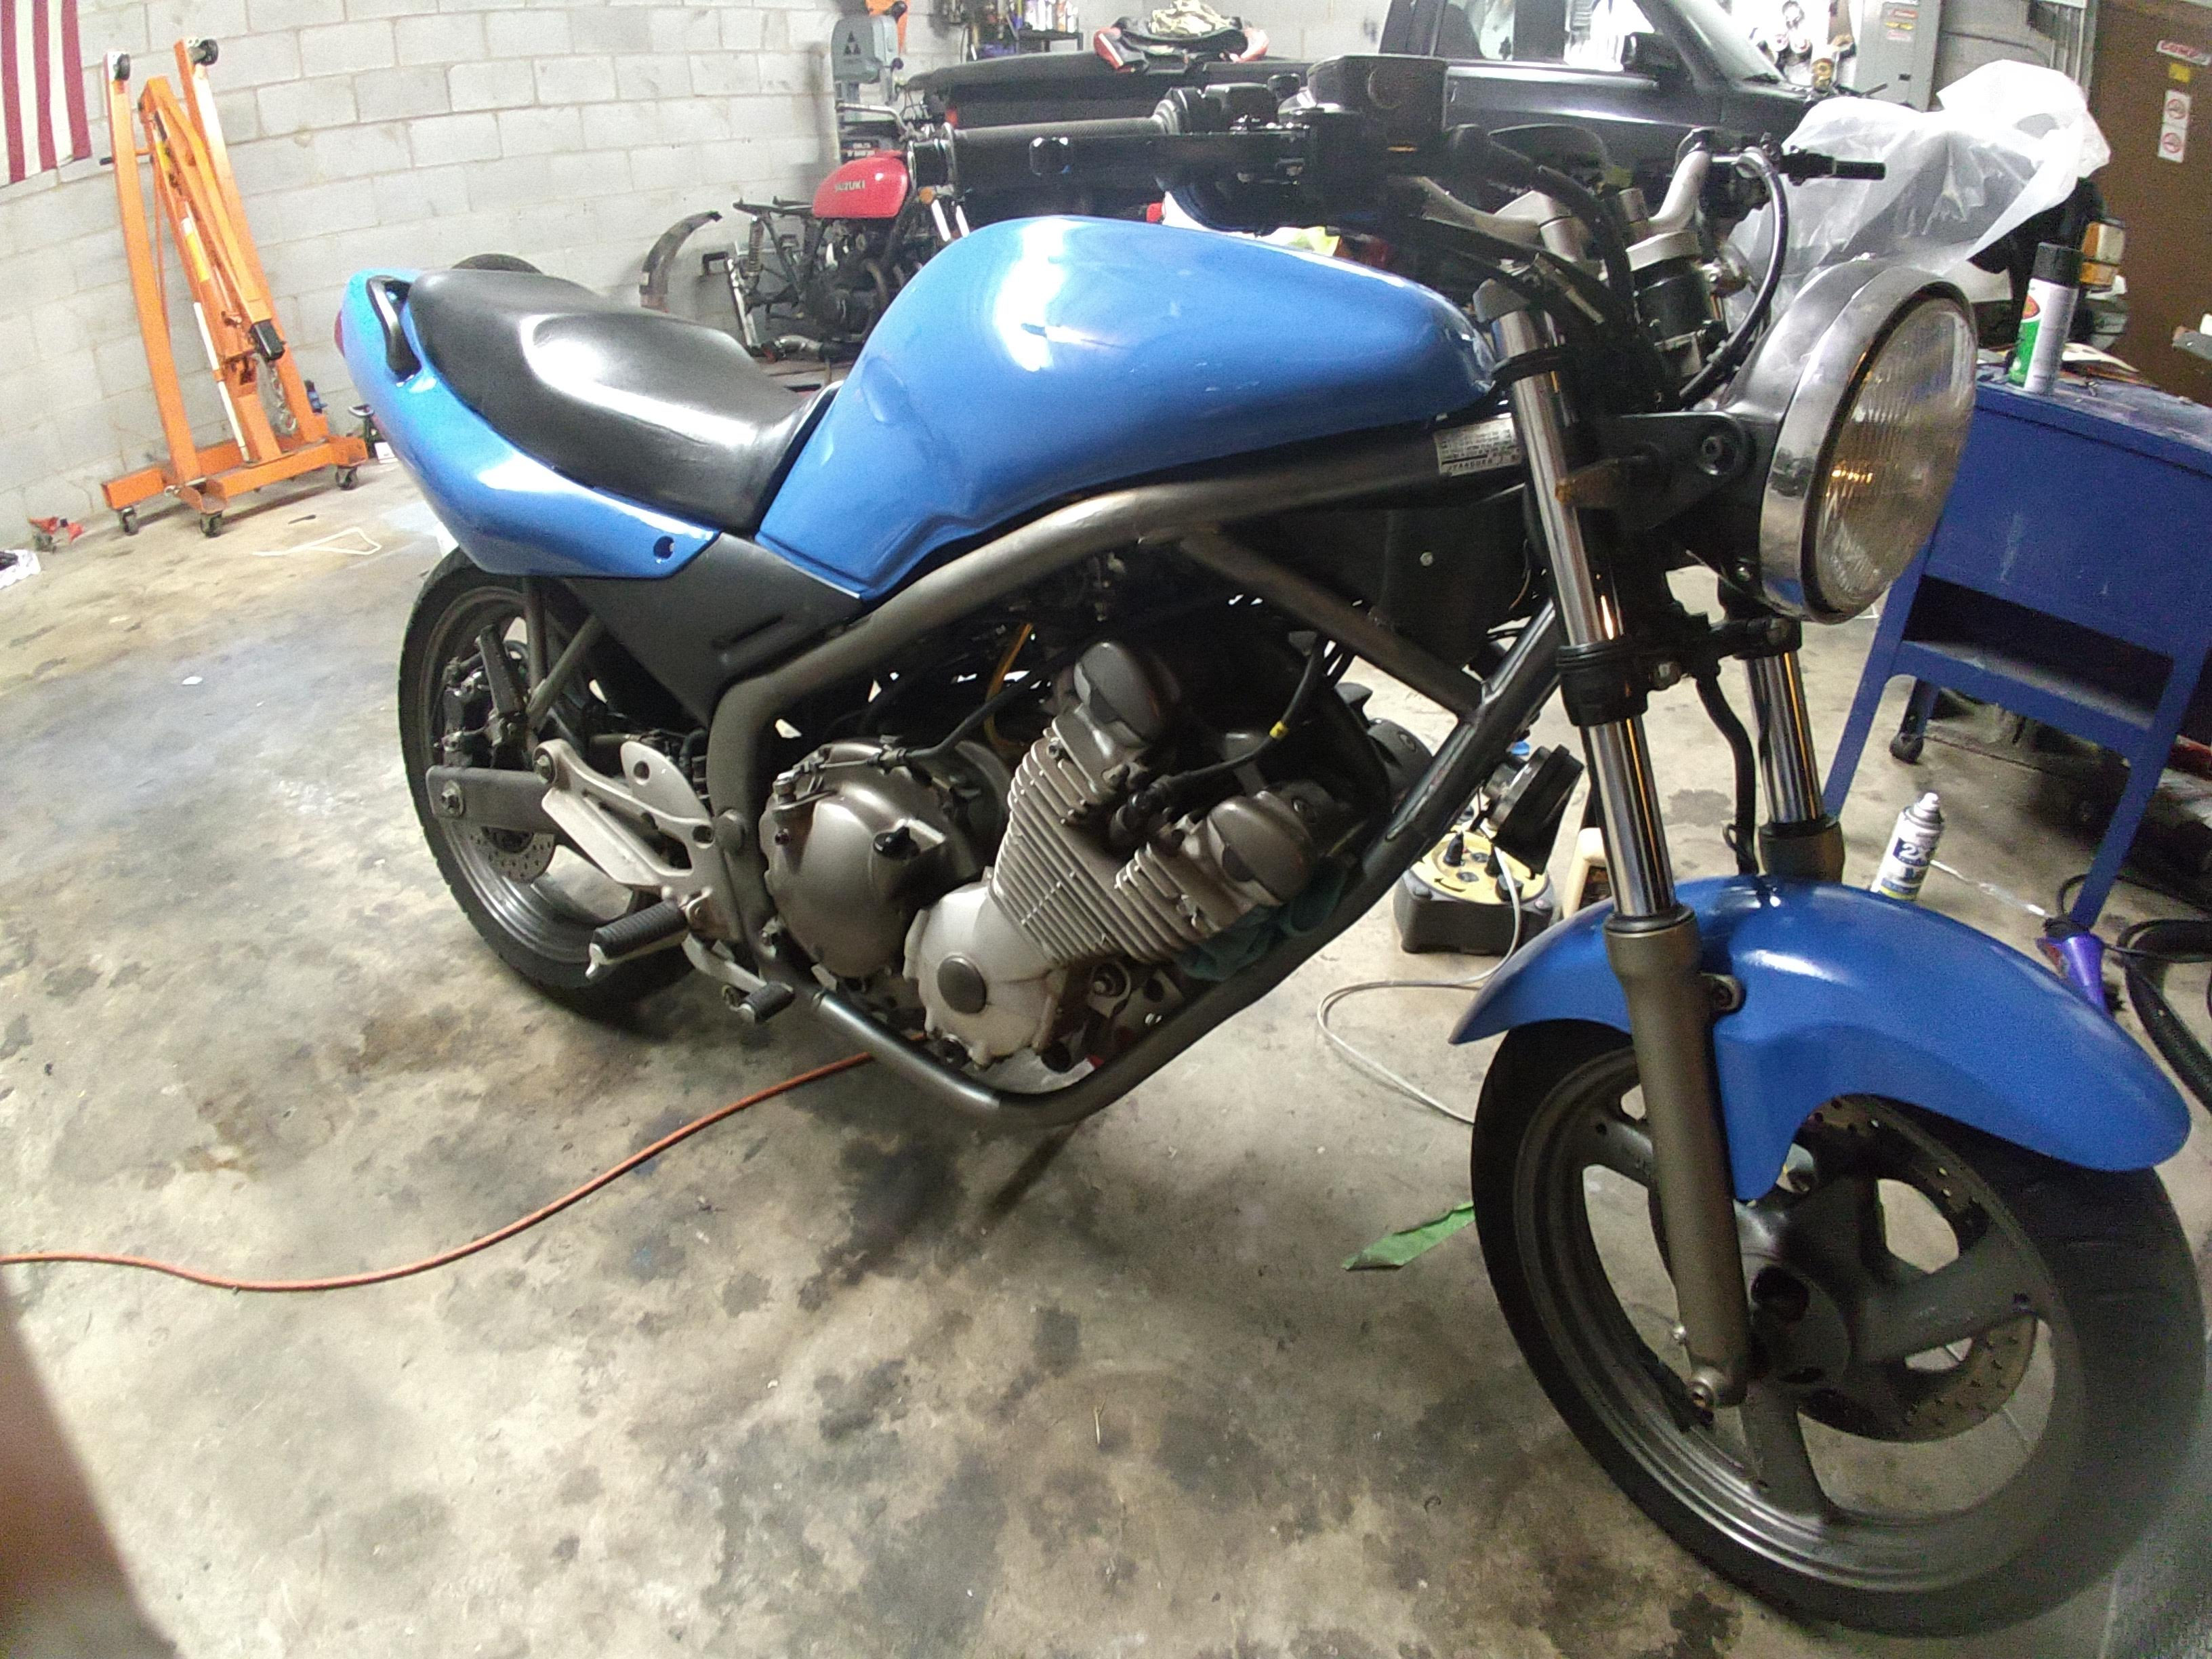 Project SONAR - My 1992 naked conversion - XJRider.com